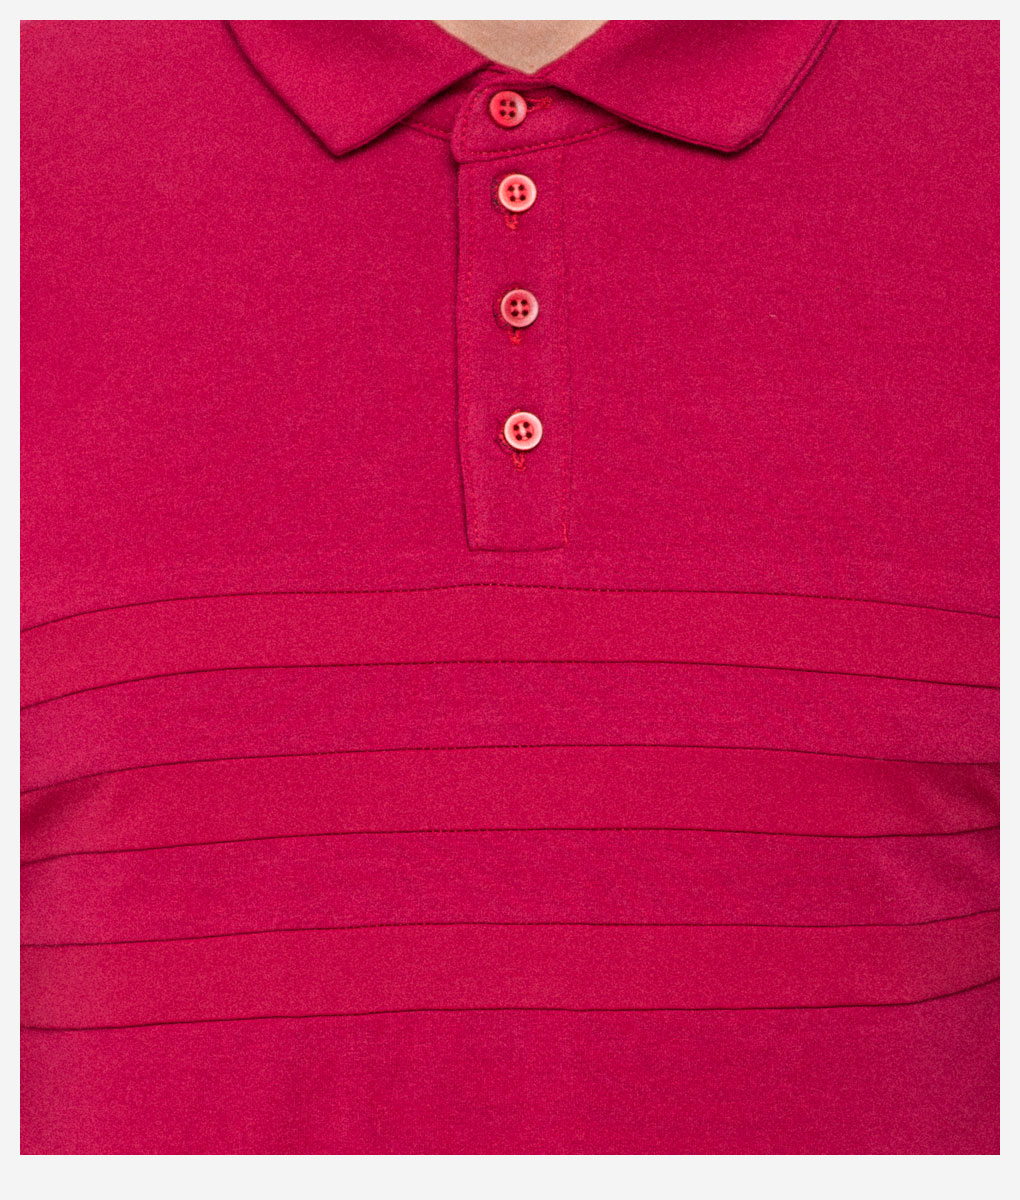 ing-clothing-maroon-polo-5-stripes-front-button-detail